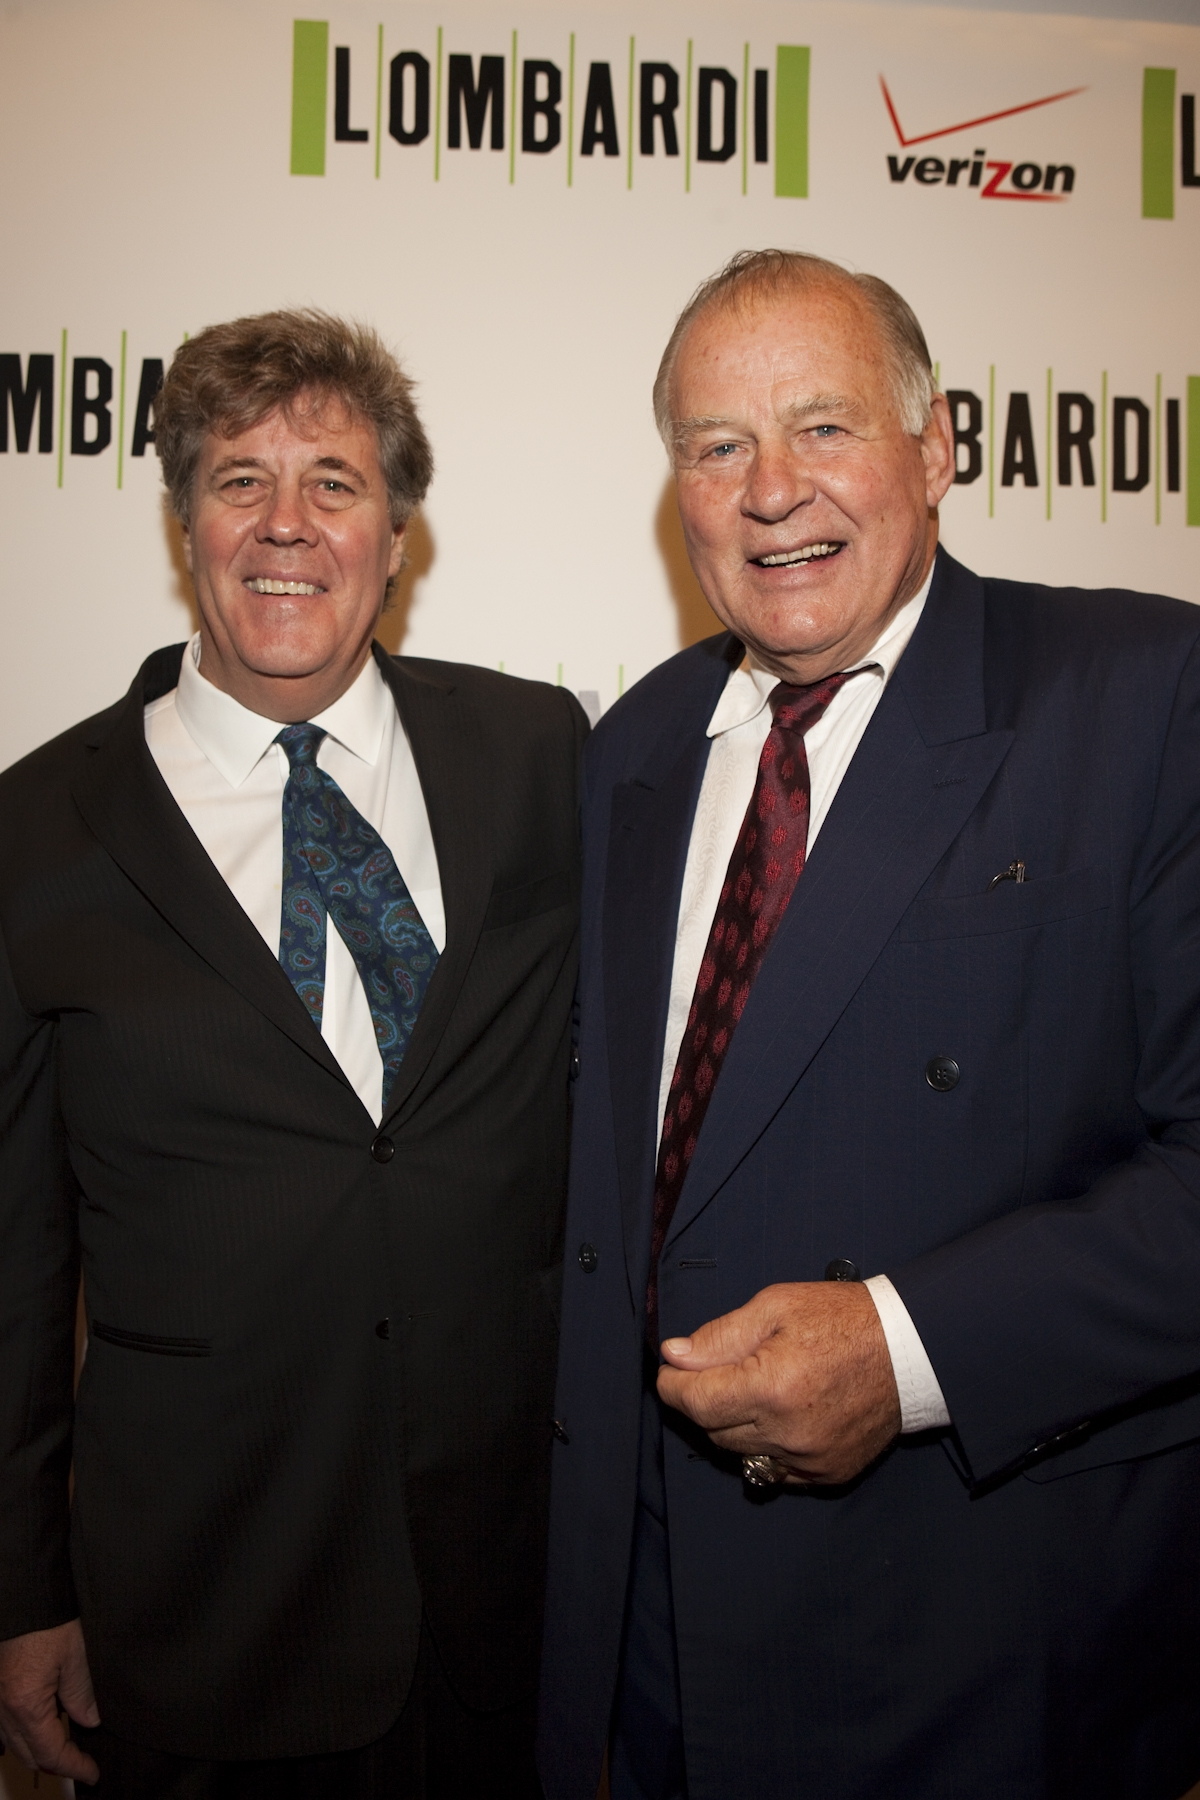 <div class='photo-info'><span class='counter'>5 of 18</span>Posted Oct 26, 2010</div><div class='photo-title'>David Maraniss and Jerry Kranmer</div><div class='photo-body'>Packer Legend Jerry Kramer and Writer of Lombardi Bio David Maraniss on opening Night of LOMBARDI a new American Play on Broadway credit lombardibroadway.com</div>